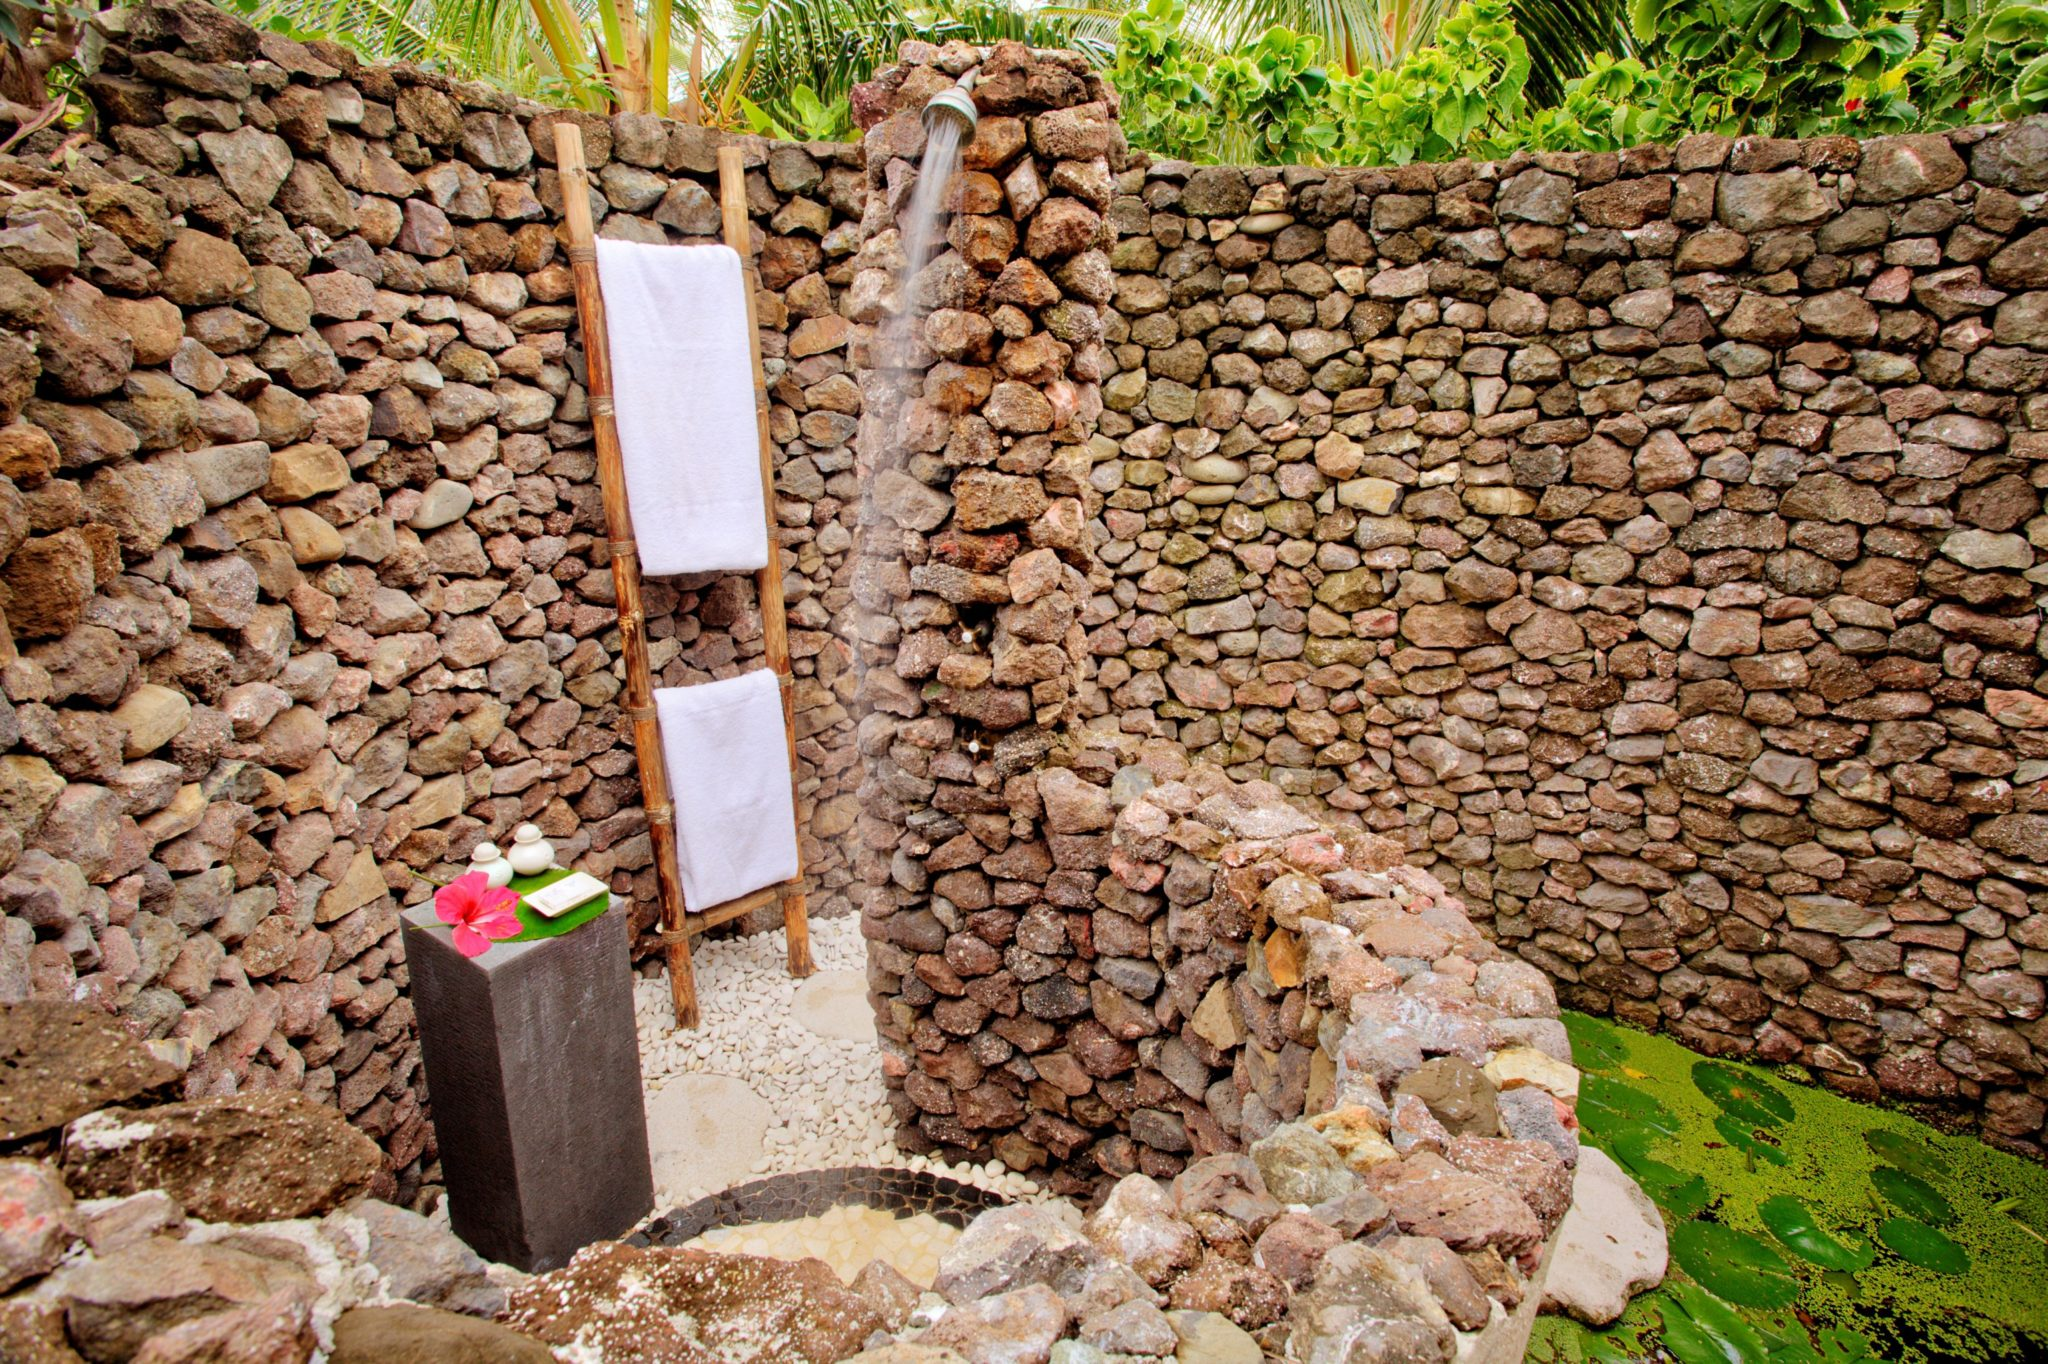 An outdoor shower made of countless little stones